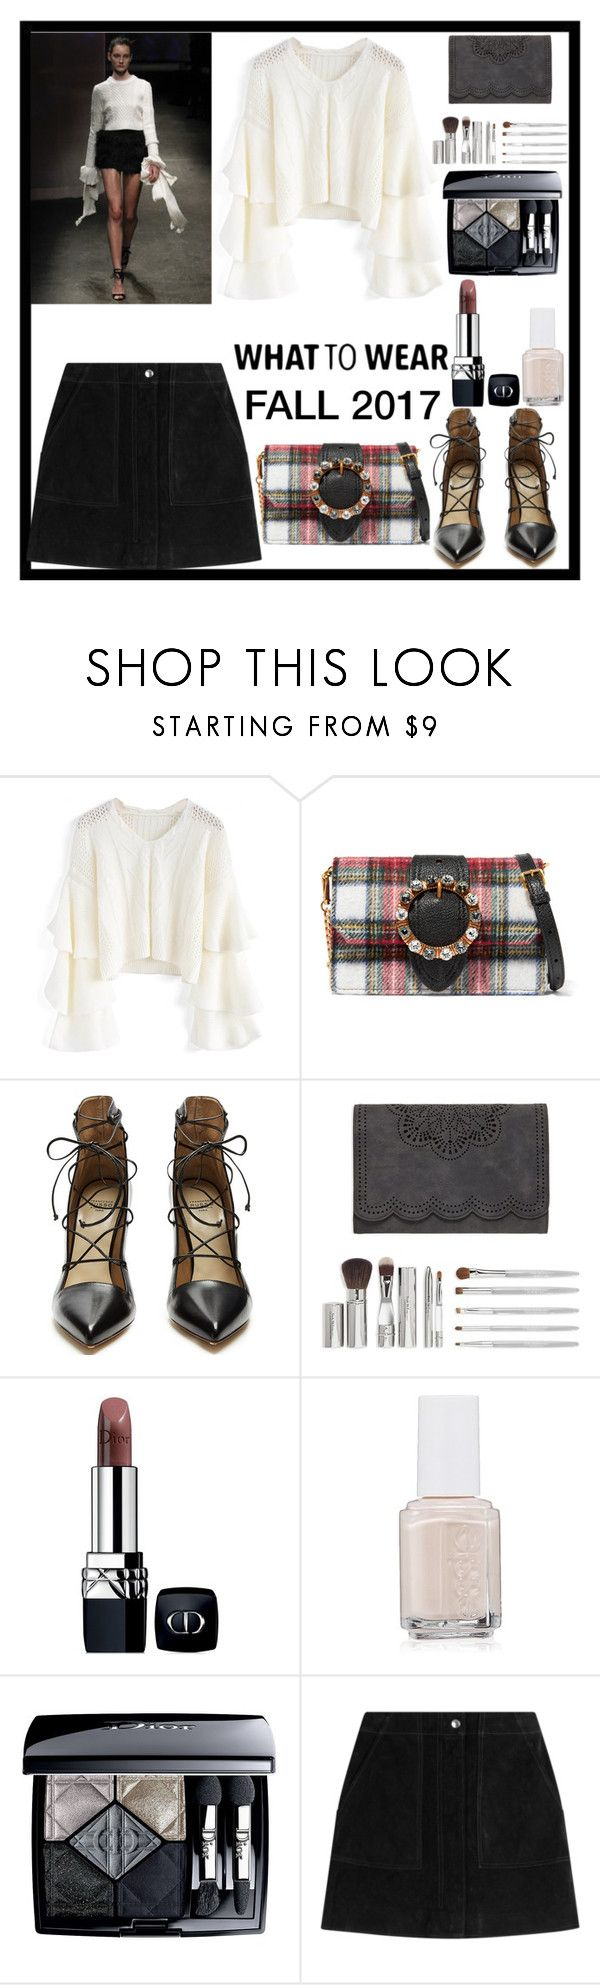 """""""What To Wear: Fall 2017"""" by sparklemeetsclassic ❤ liked on Polyvore featuring Milly, Chicwish, Miu Miu, Francesco Russo, Trish McEvoy, Christian Dior, Essie and rag & bone"""